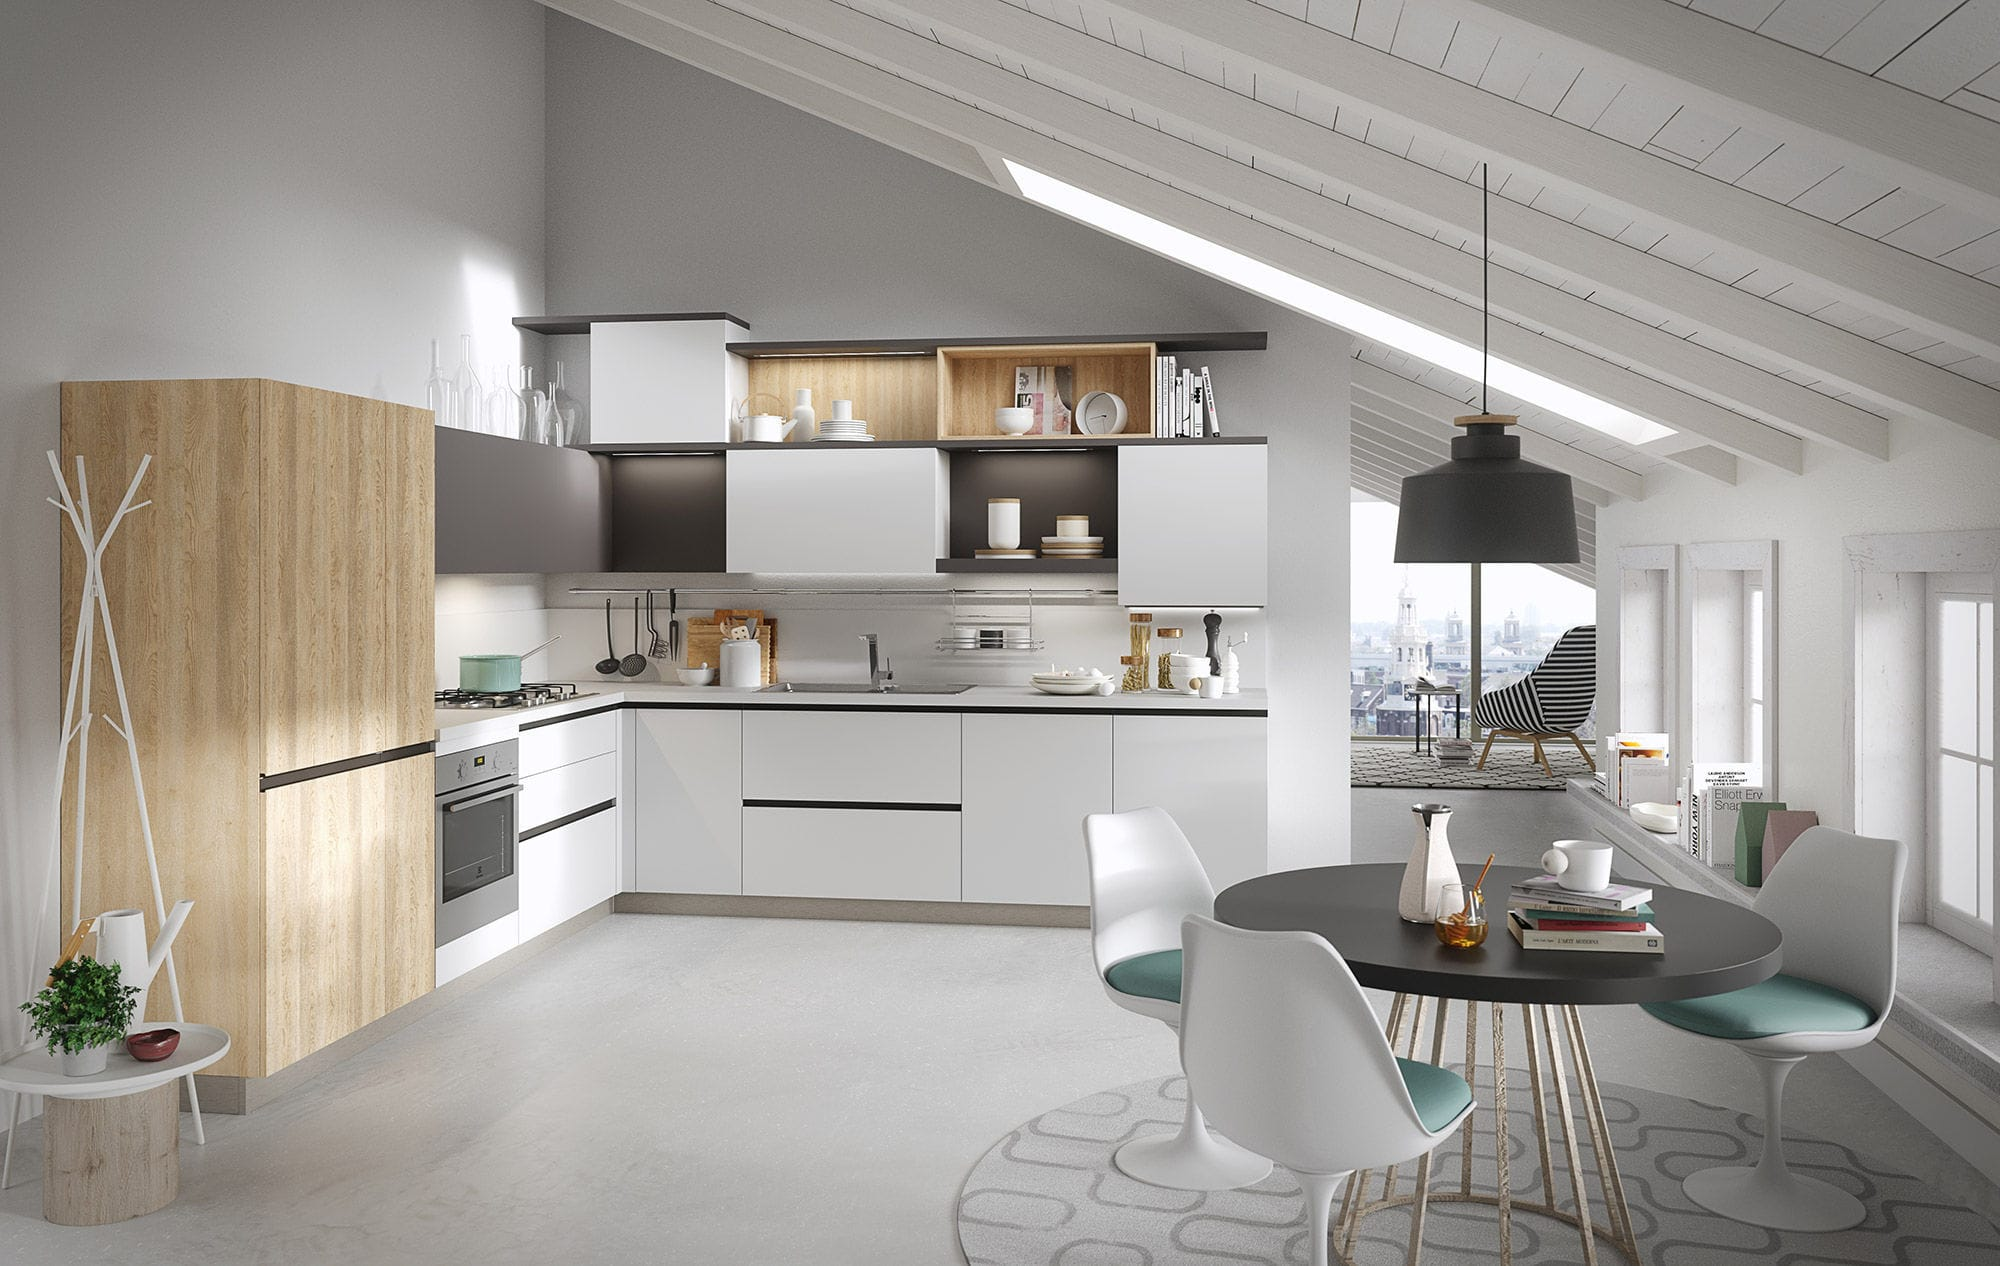 Pinjerry Truong On Modern Kitchen  Pinterest  Modern And Best Contemporary Kitchen Chairs Review